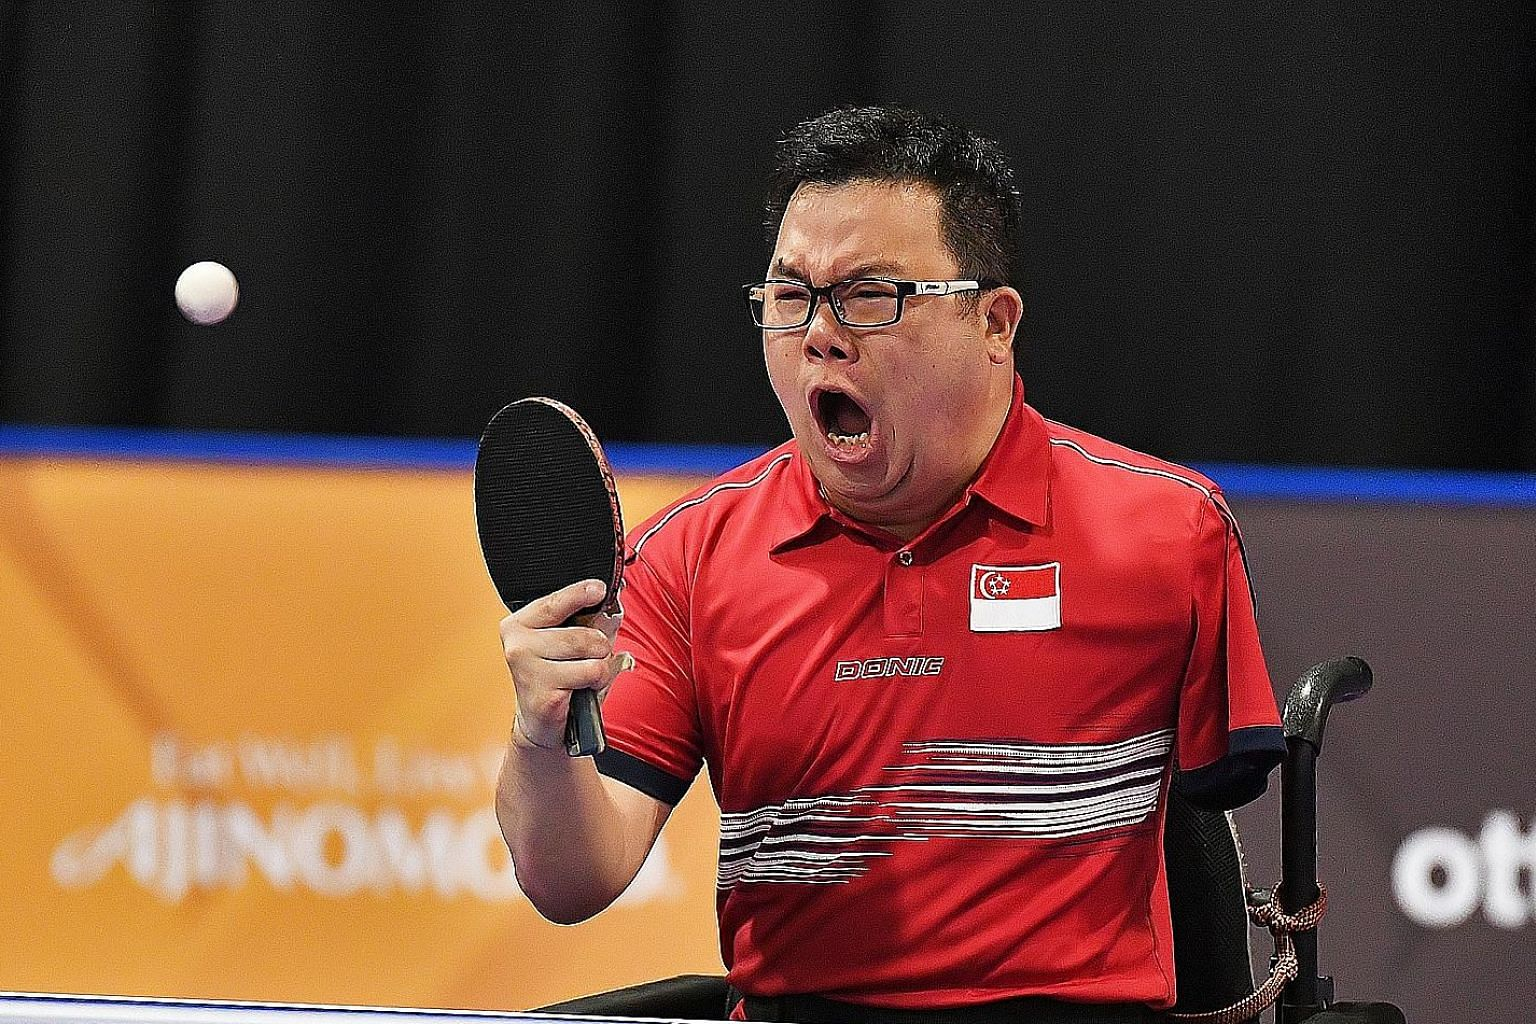 Jason Chee celebrating after beating Thailand's Thirayu Chueawong at the 2017 Asean Para Games to clinch his first individual gold.